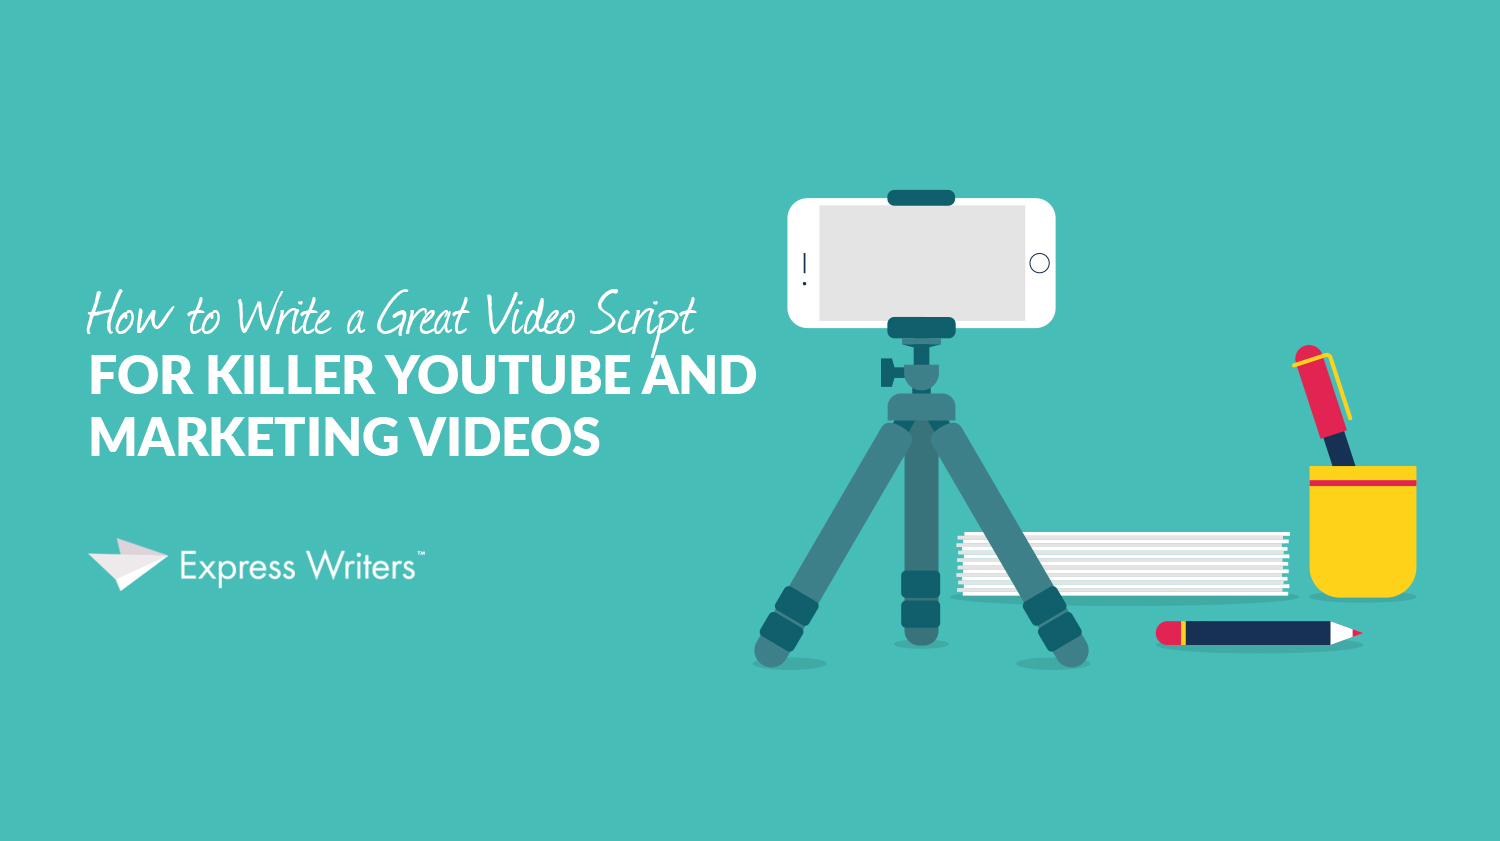 how to write a great video script for youtube videos